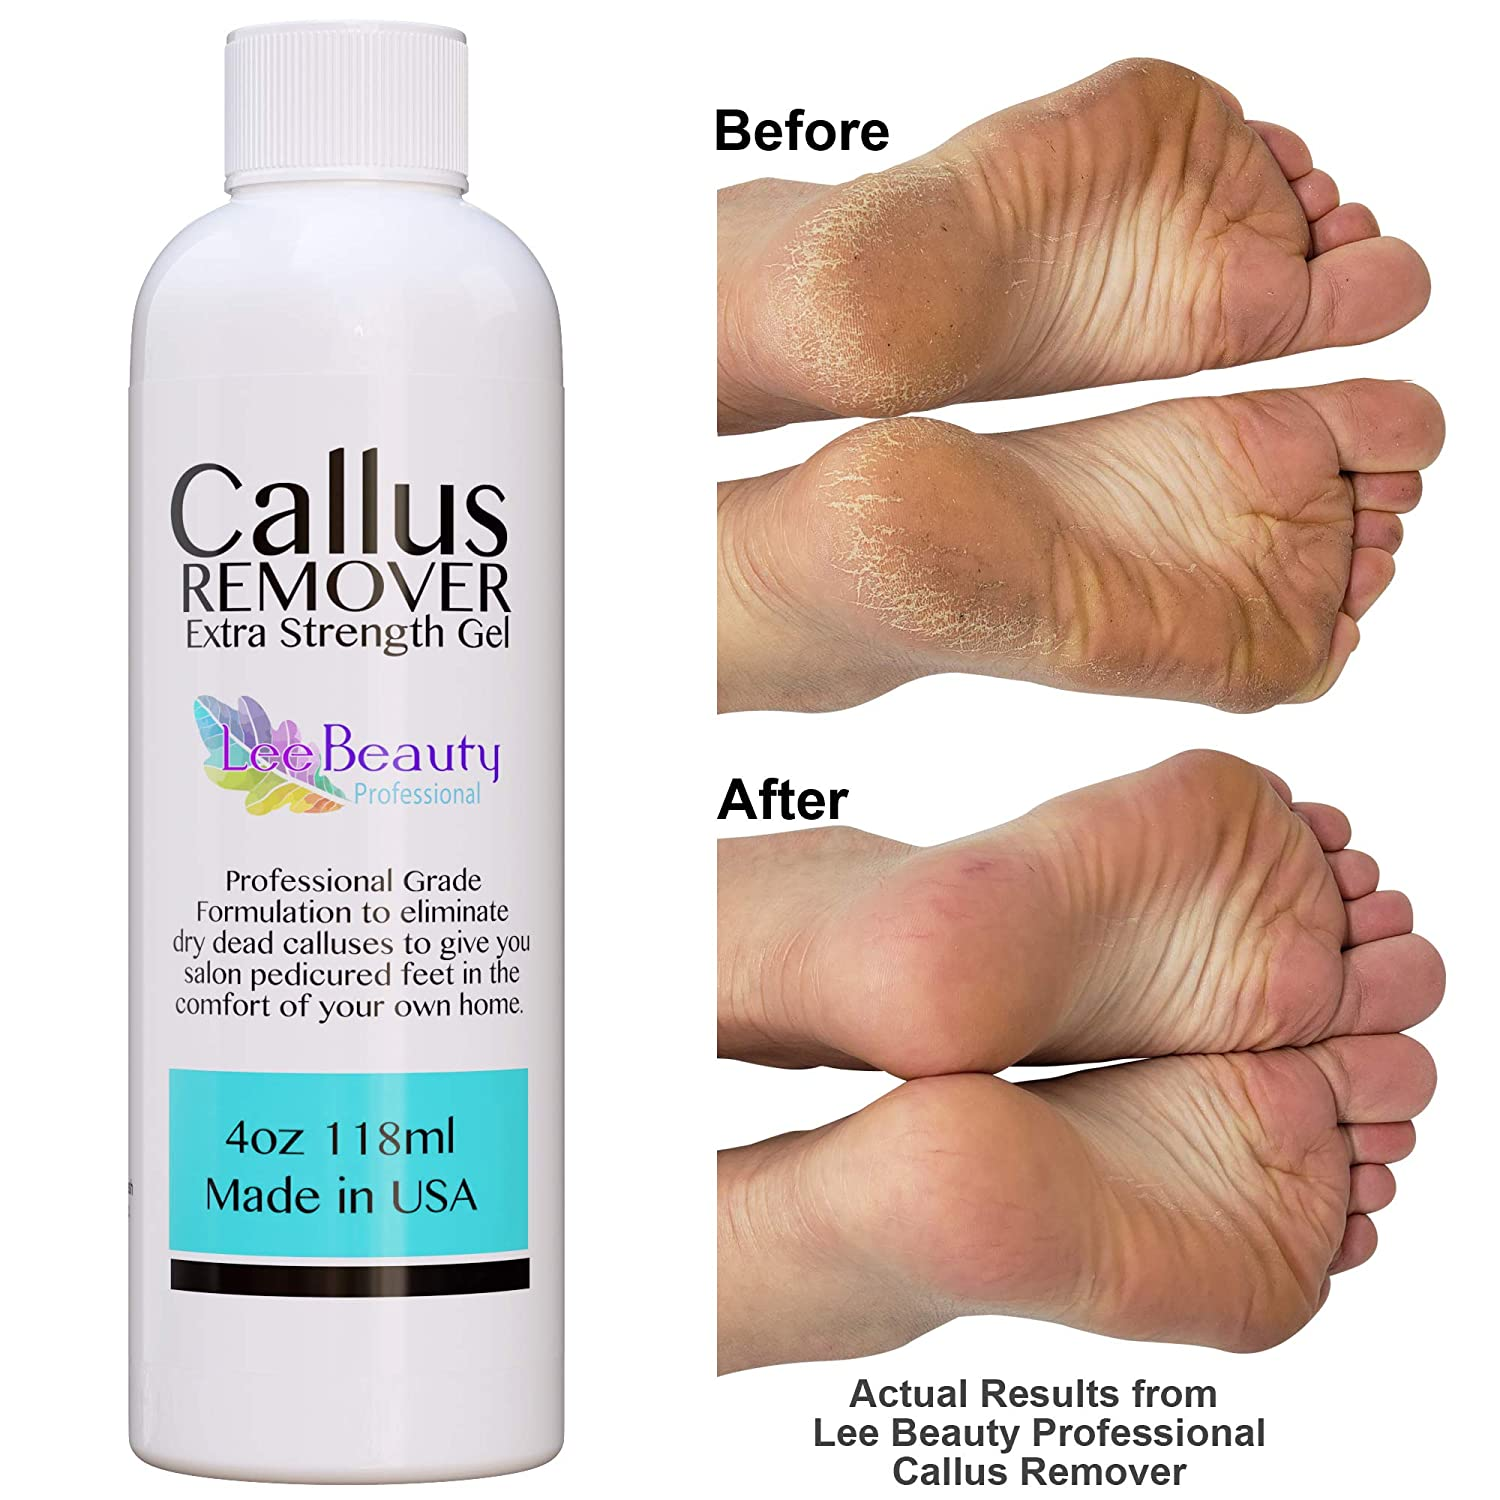 Callus Remover gel for feet, pair with pumice stone